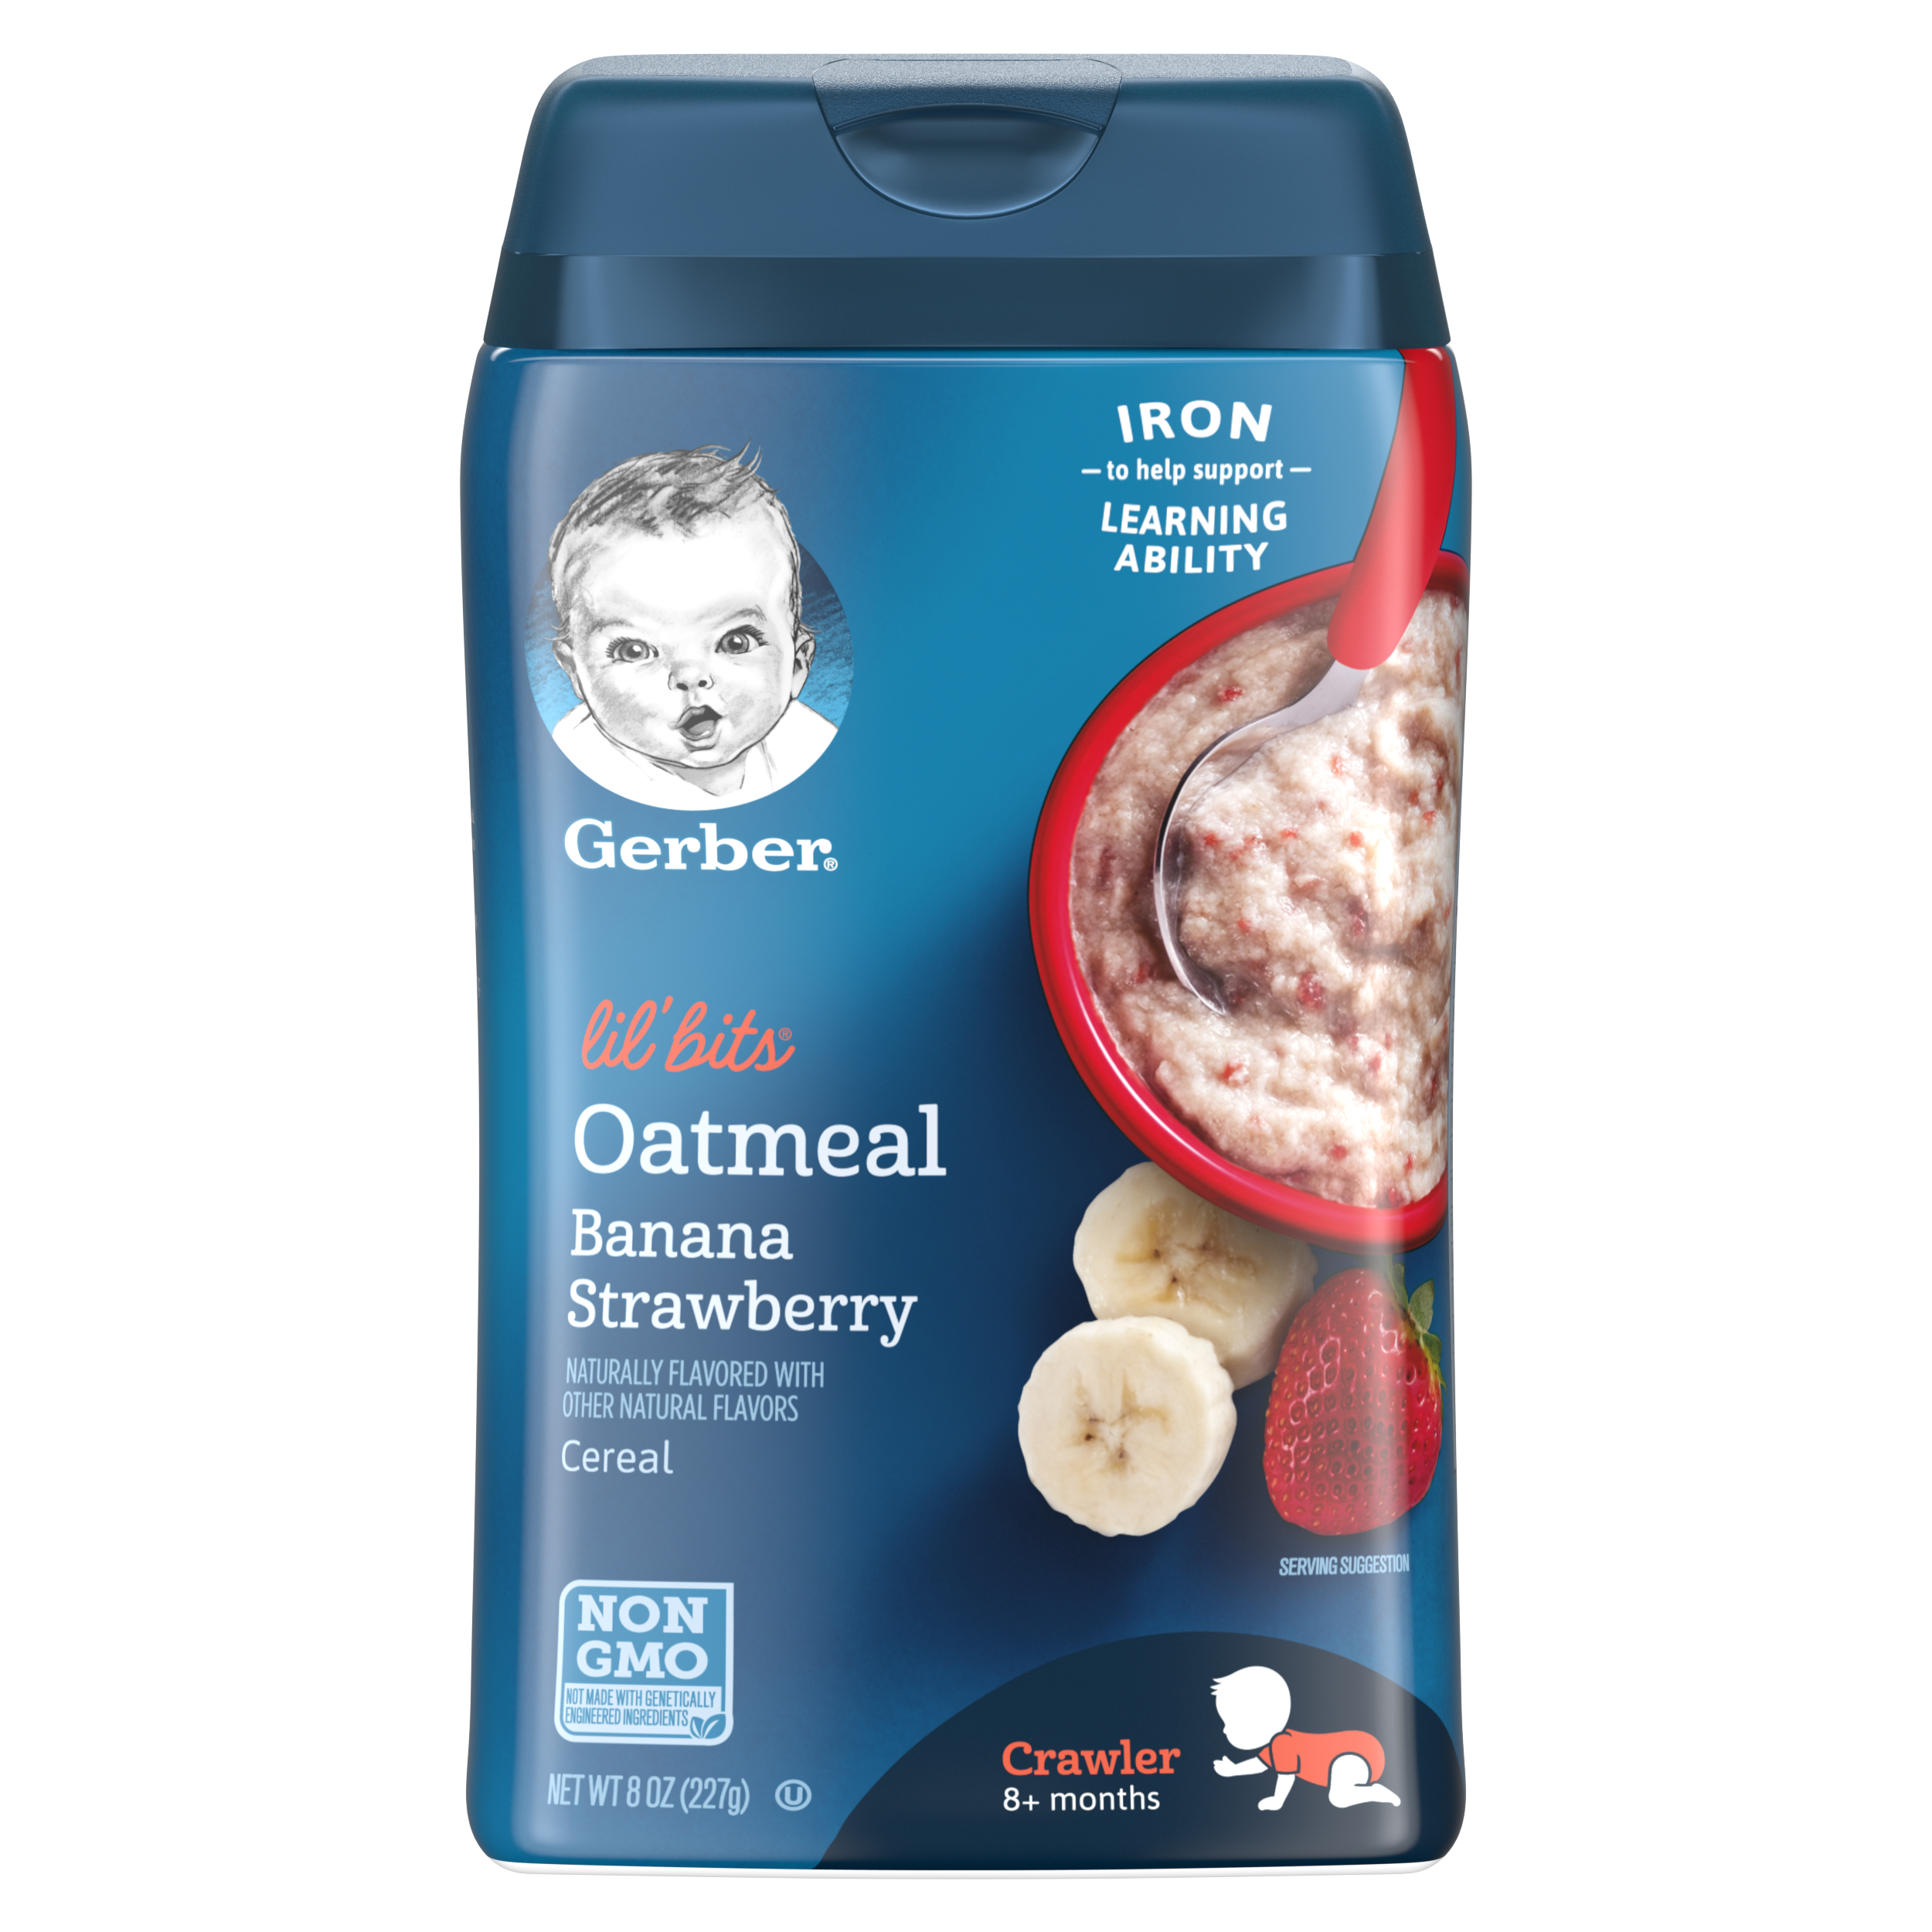 Gerber Lil' Bits Oatmeal Banana Strawberry Baby Cereal, 8 oz